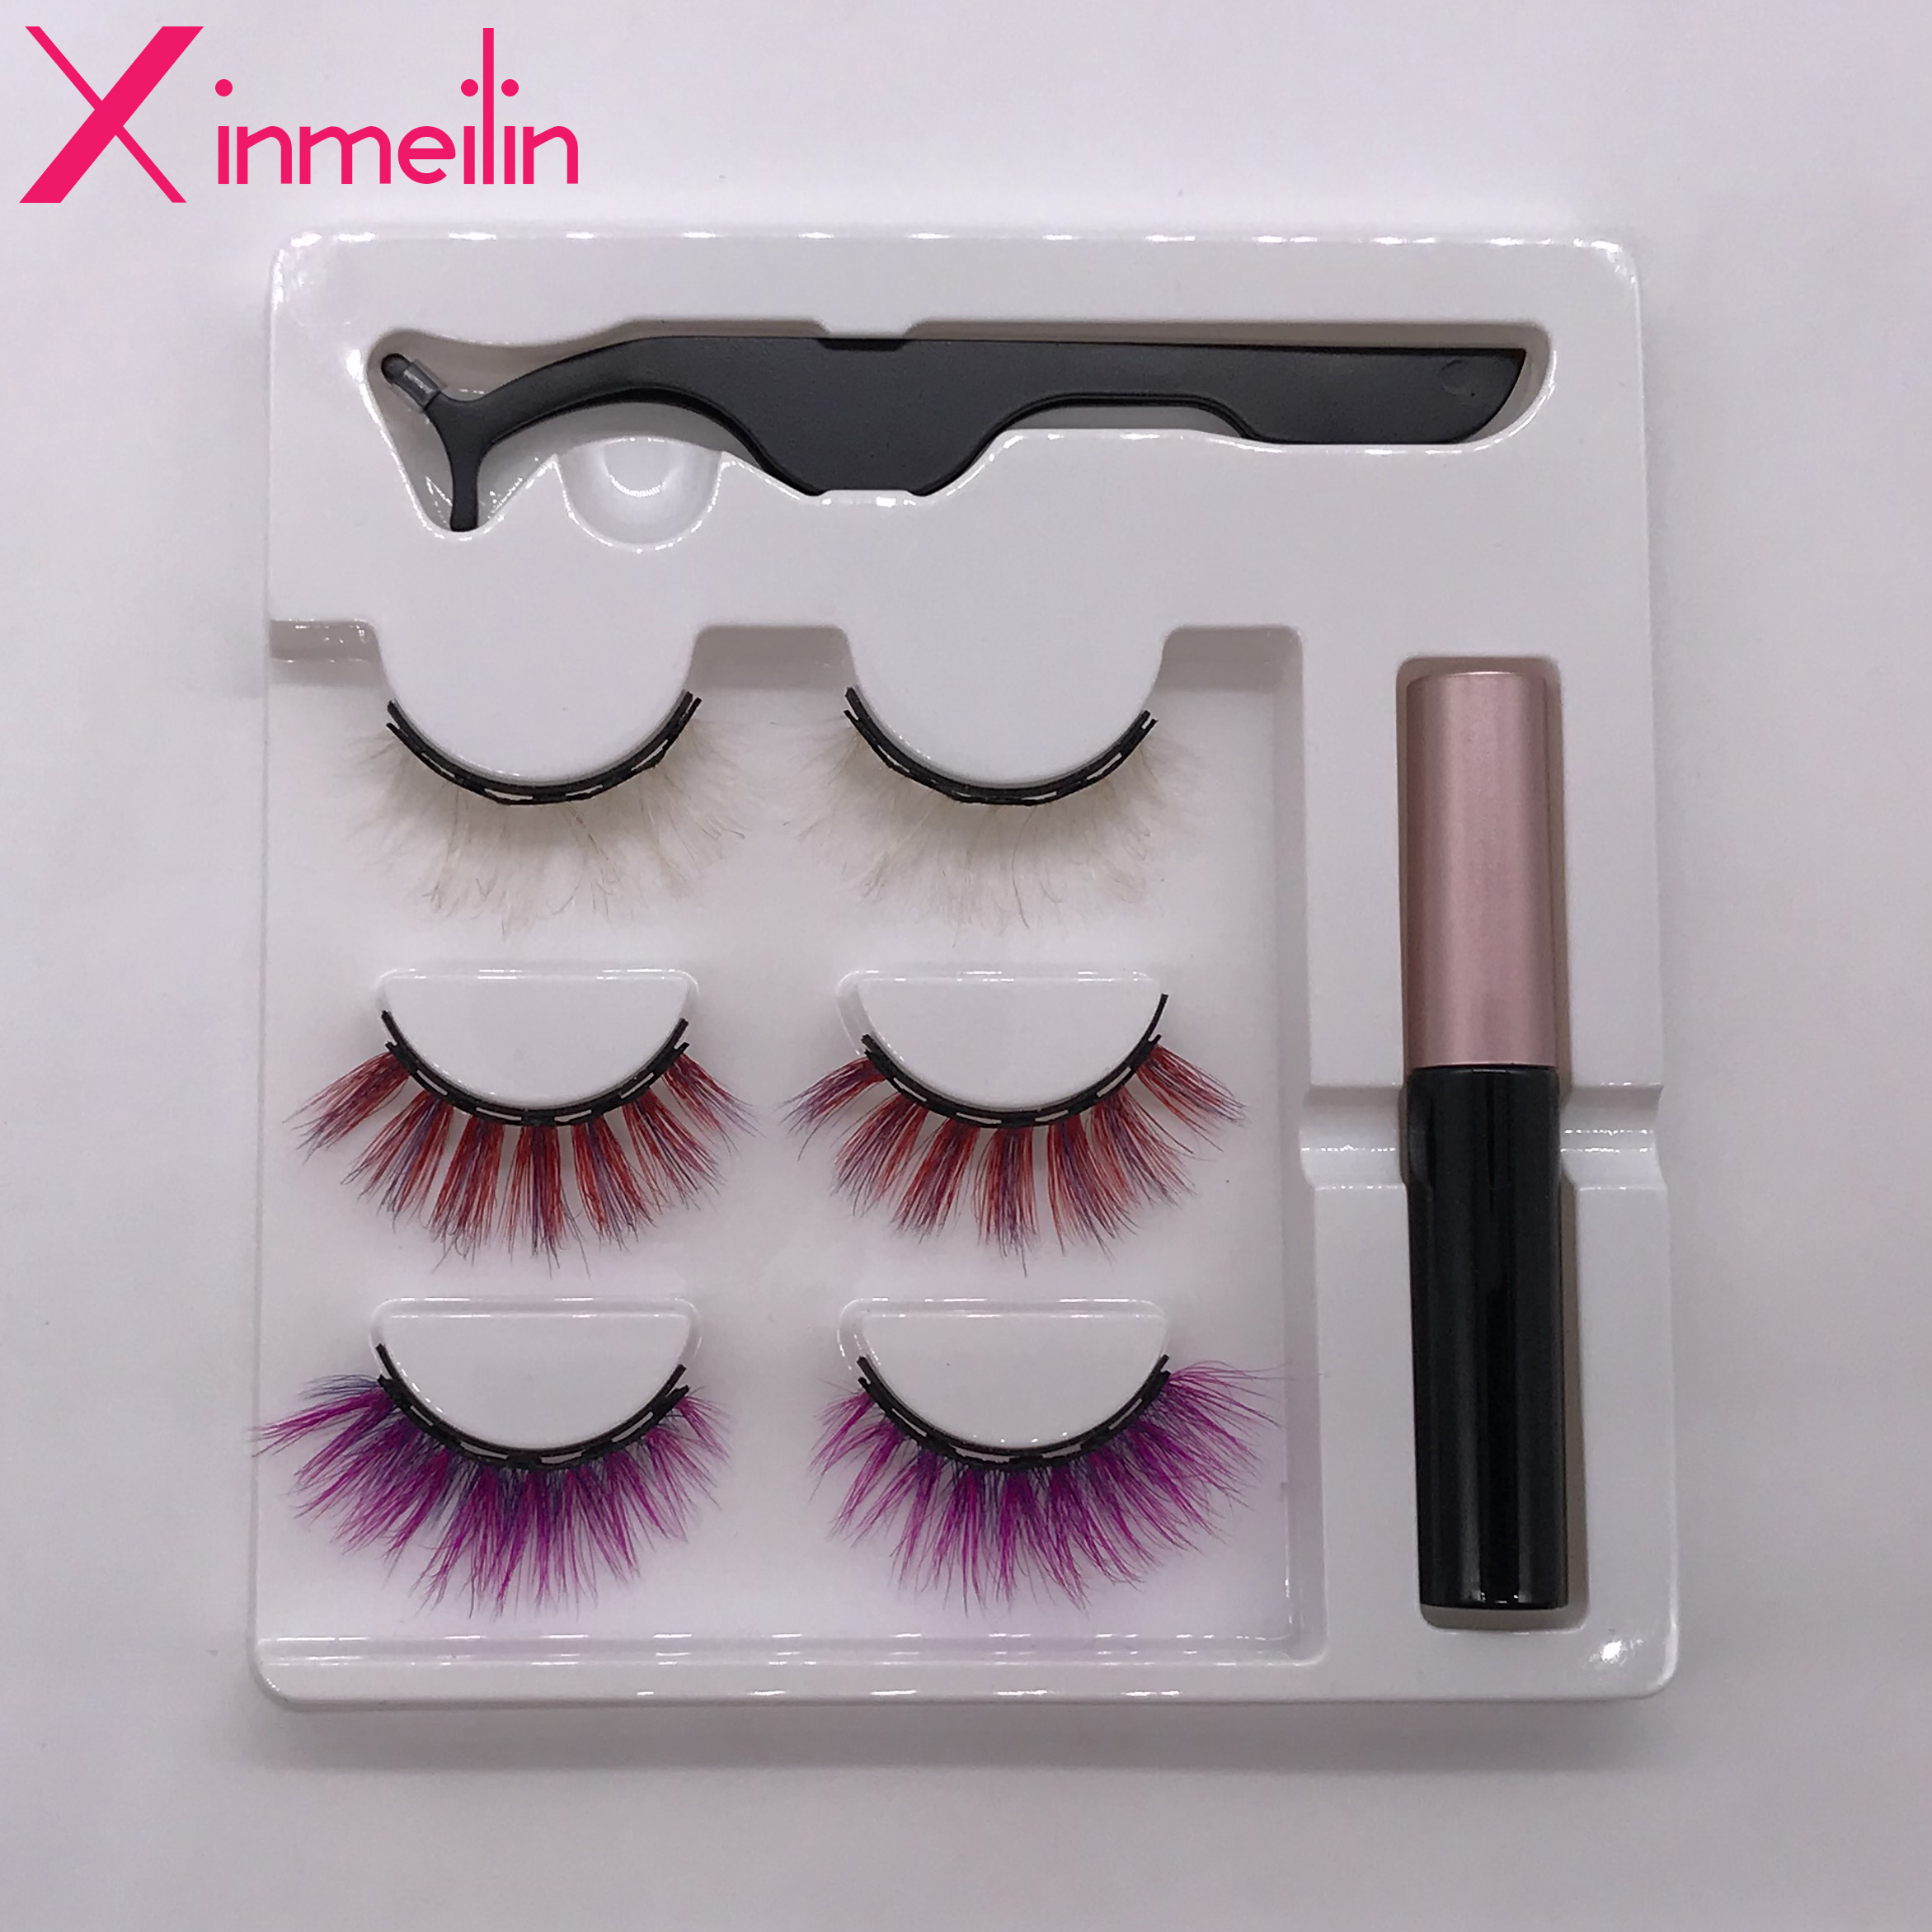 3 Pairs 3D Luxurious Mink Color Magnet Fake Eyelash Set Multicolor Optional Waterproof Long Lasting Magnetic Eyelash Extension